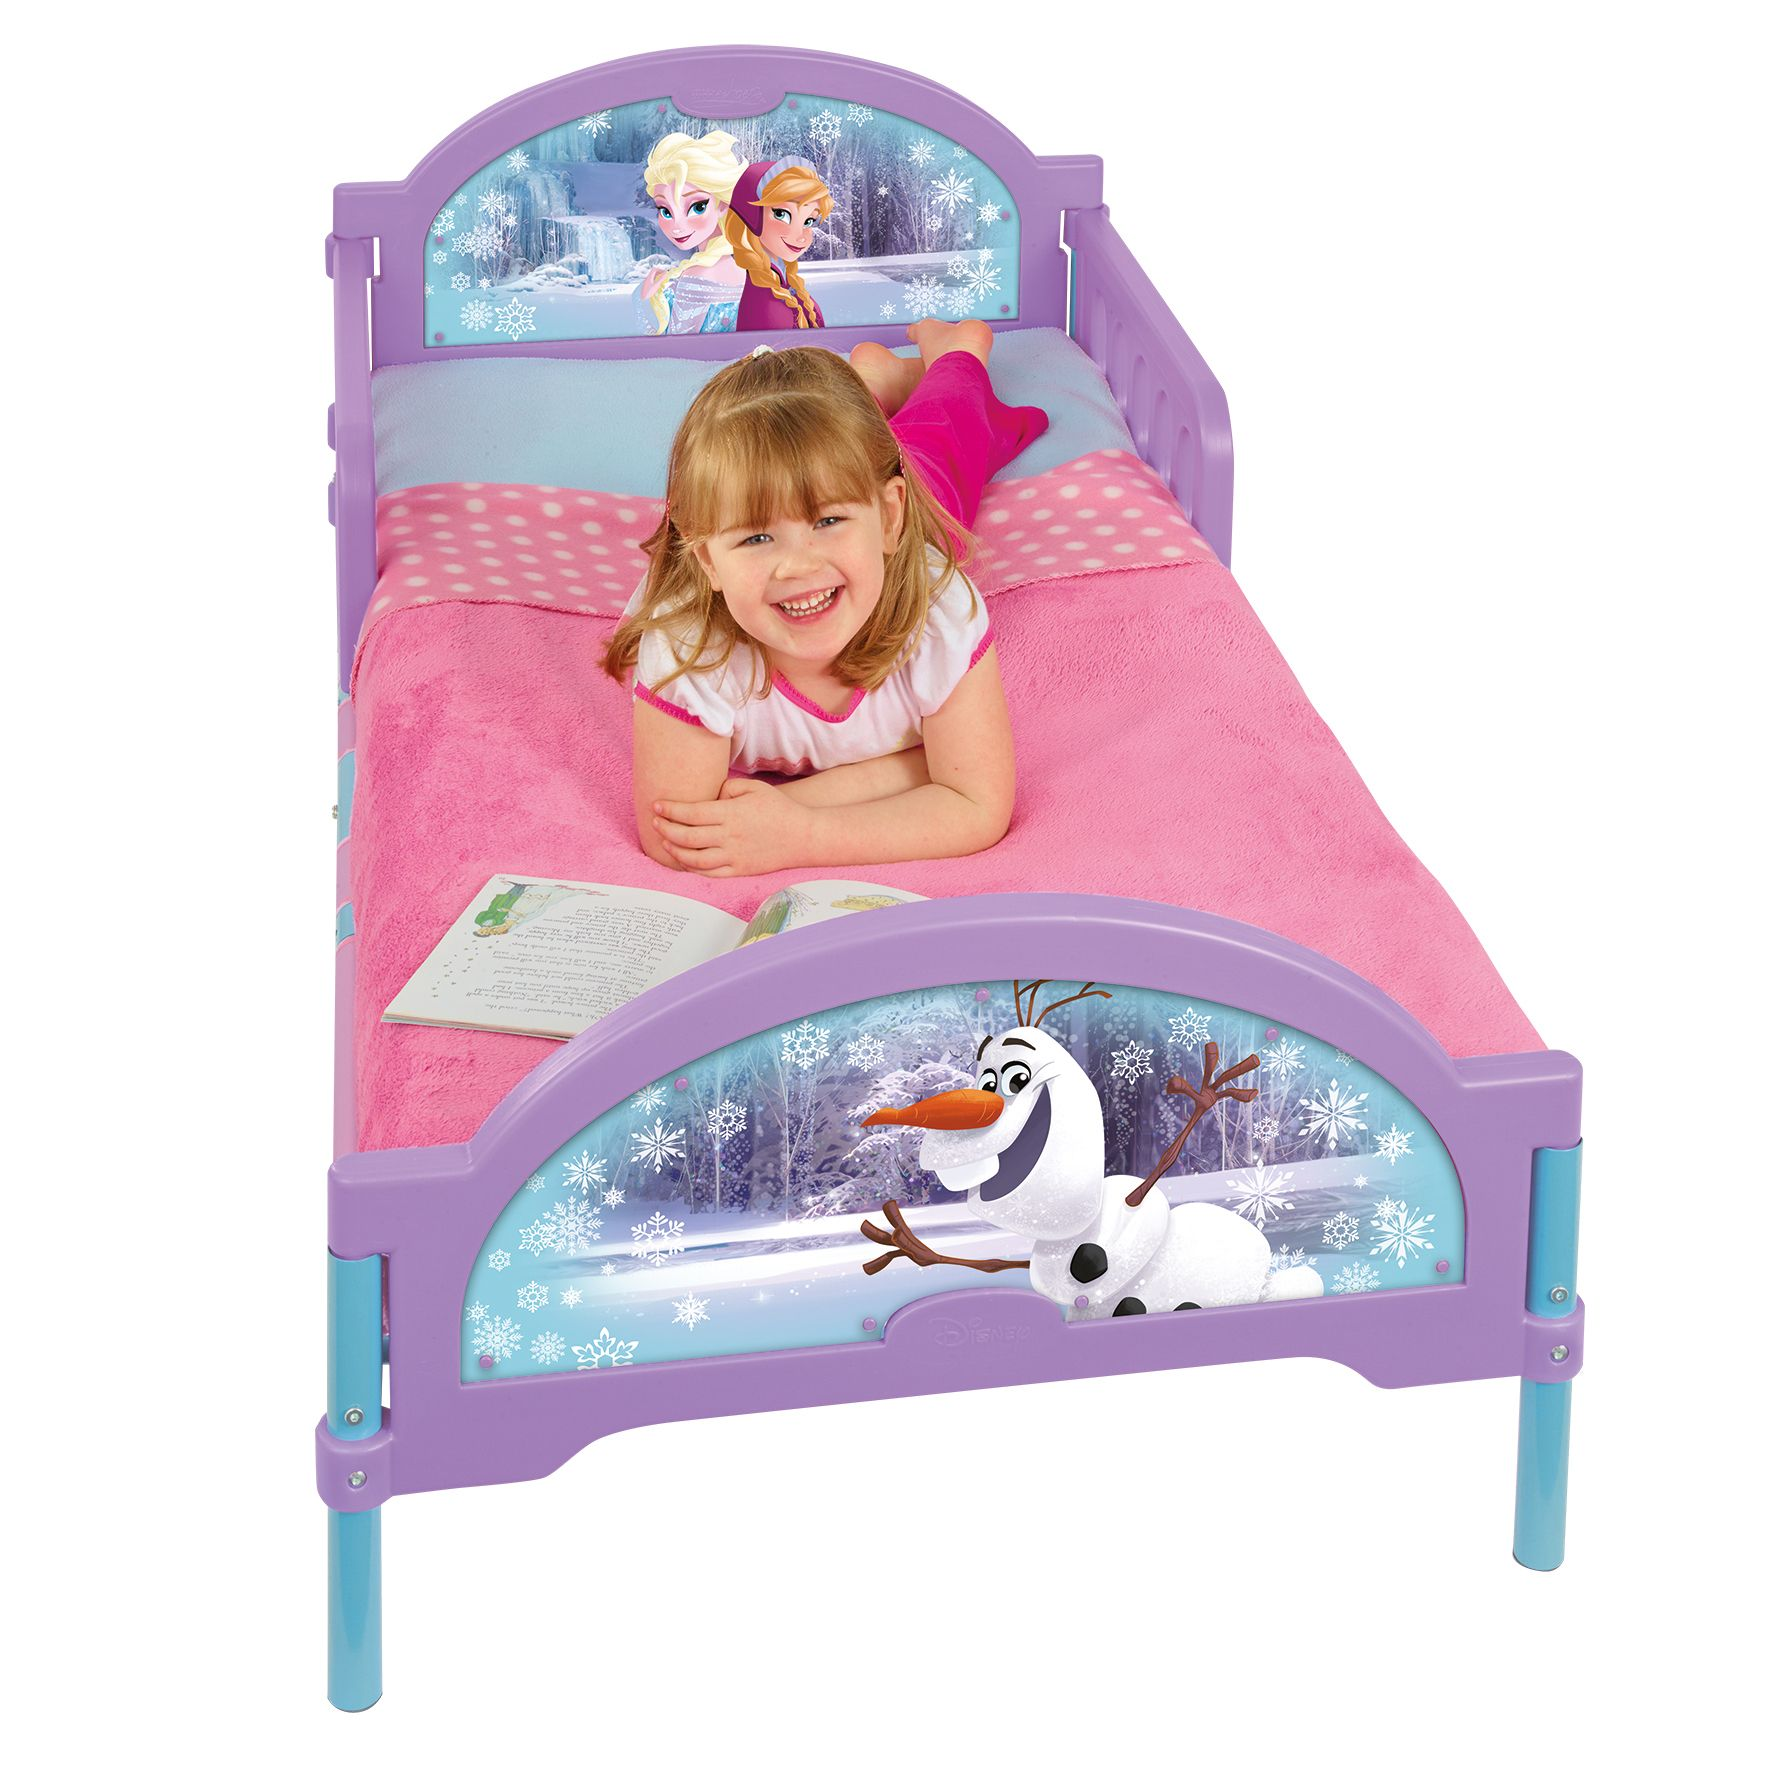 CosyTime Toddler Bed Mattress Options Available Frozen Minnie